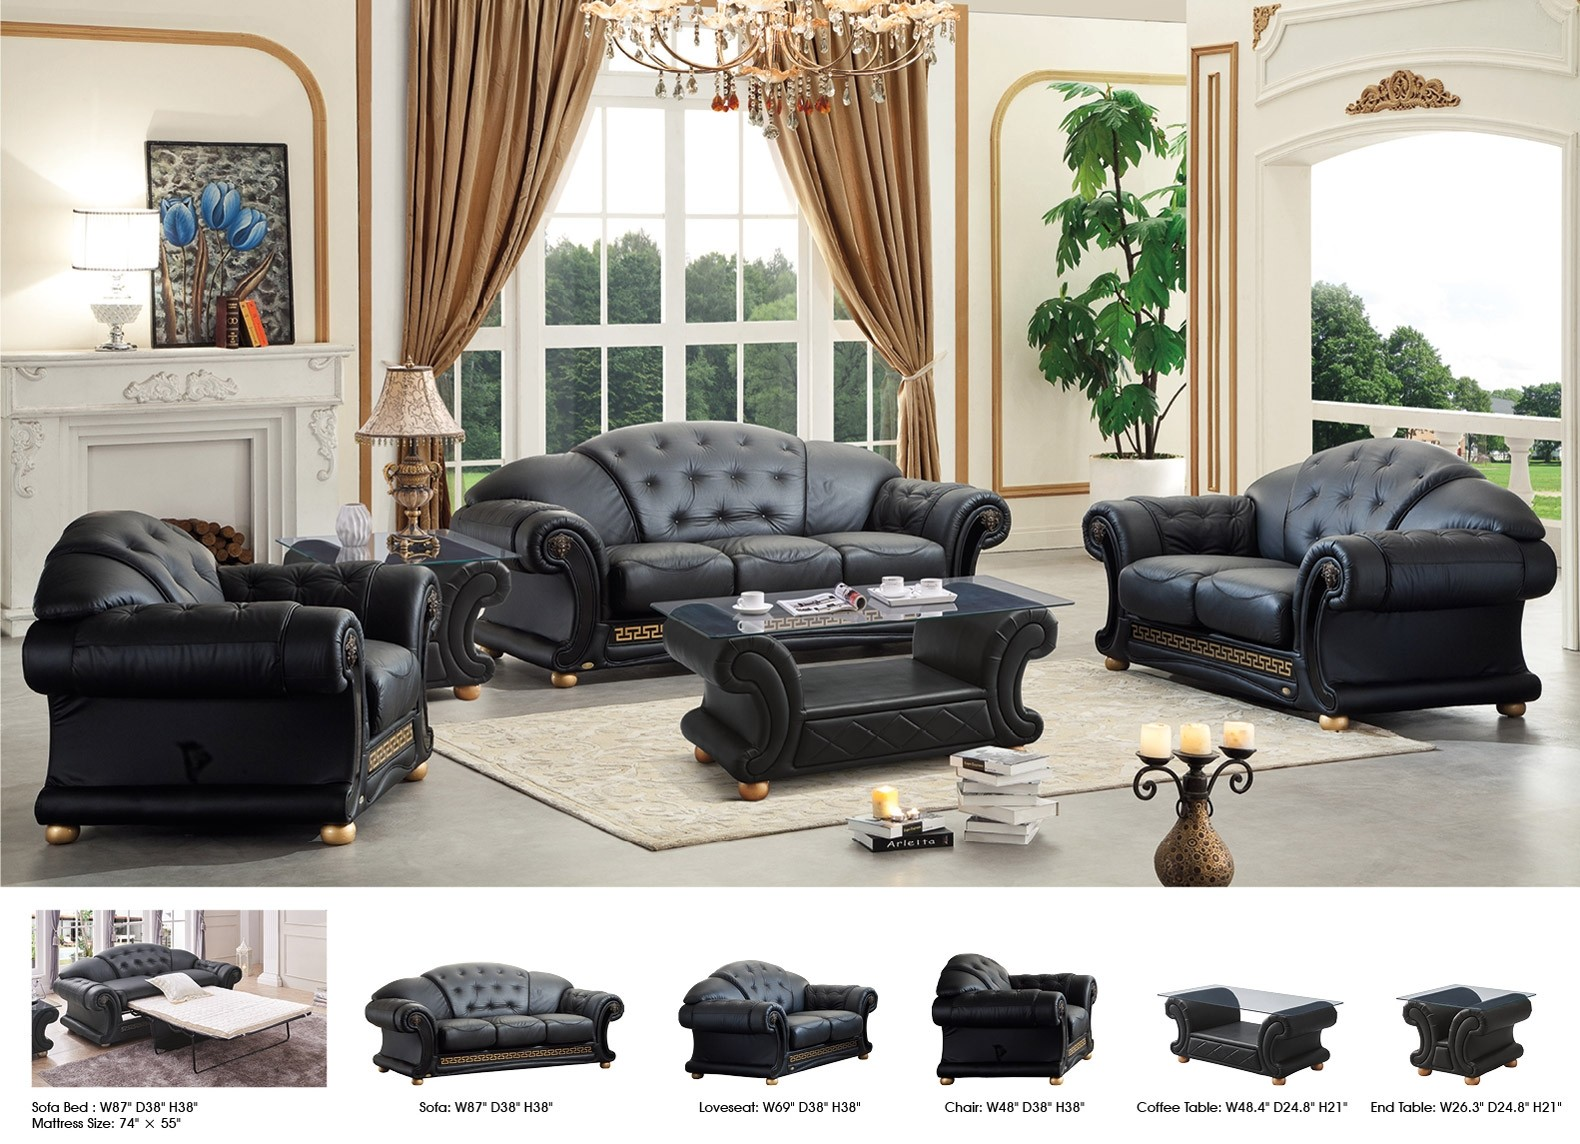 Living Room Set In Black Italian Leather